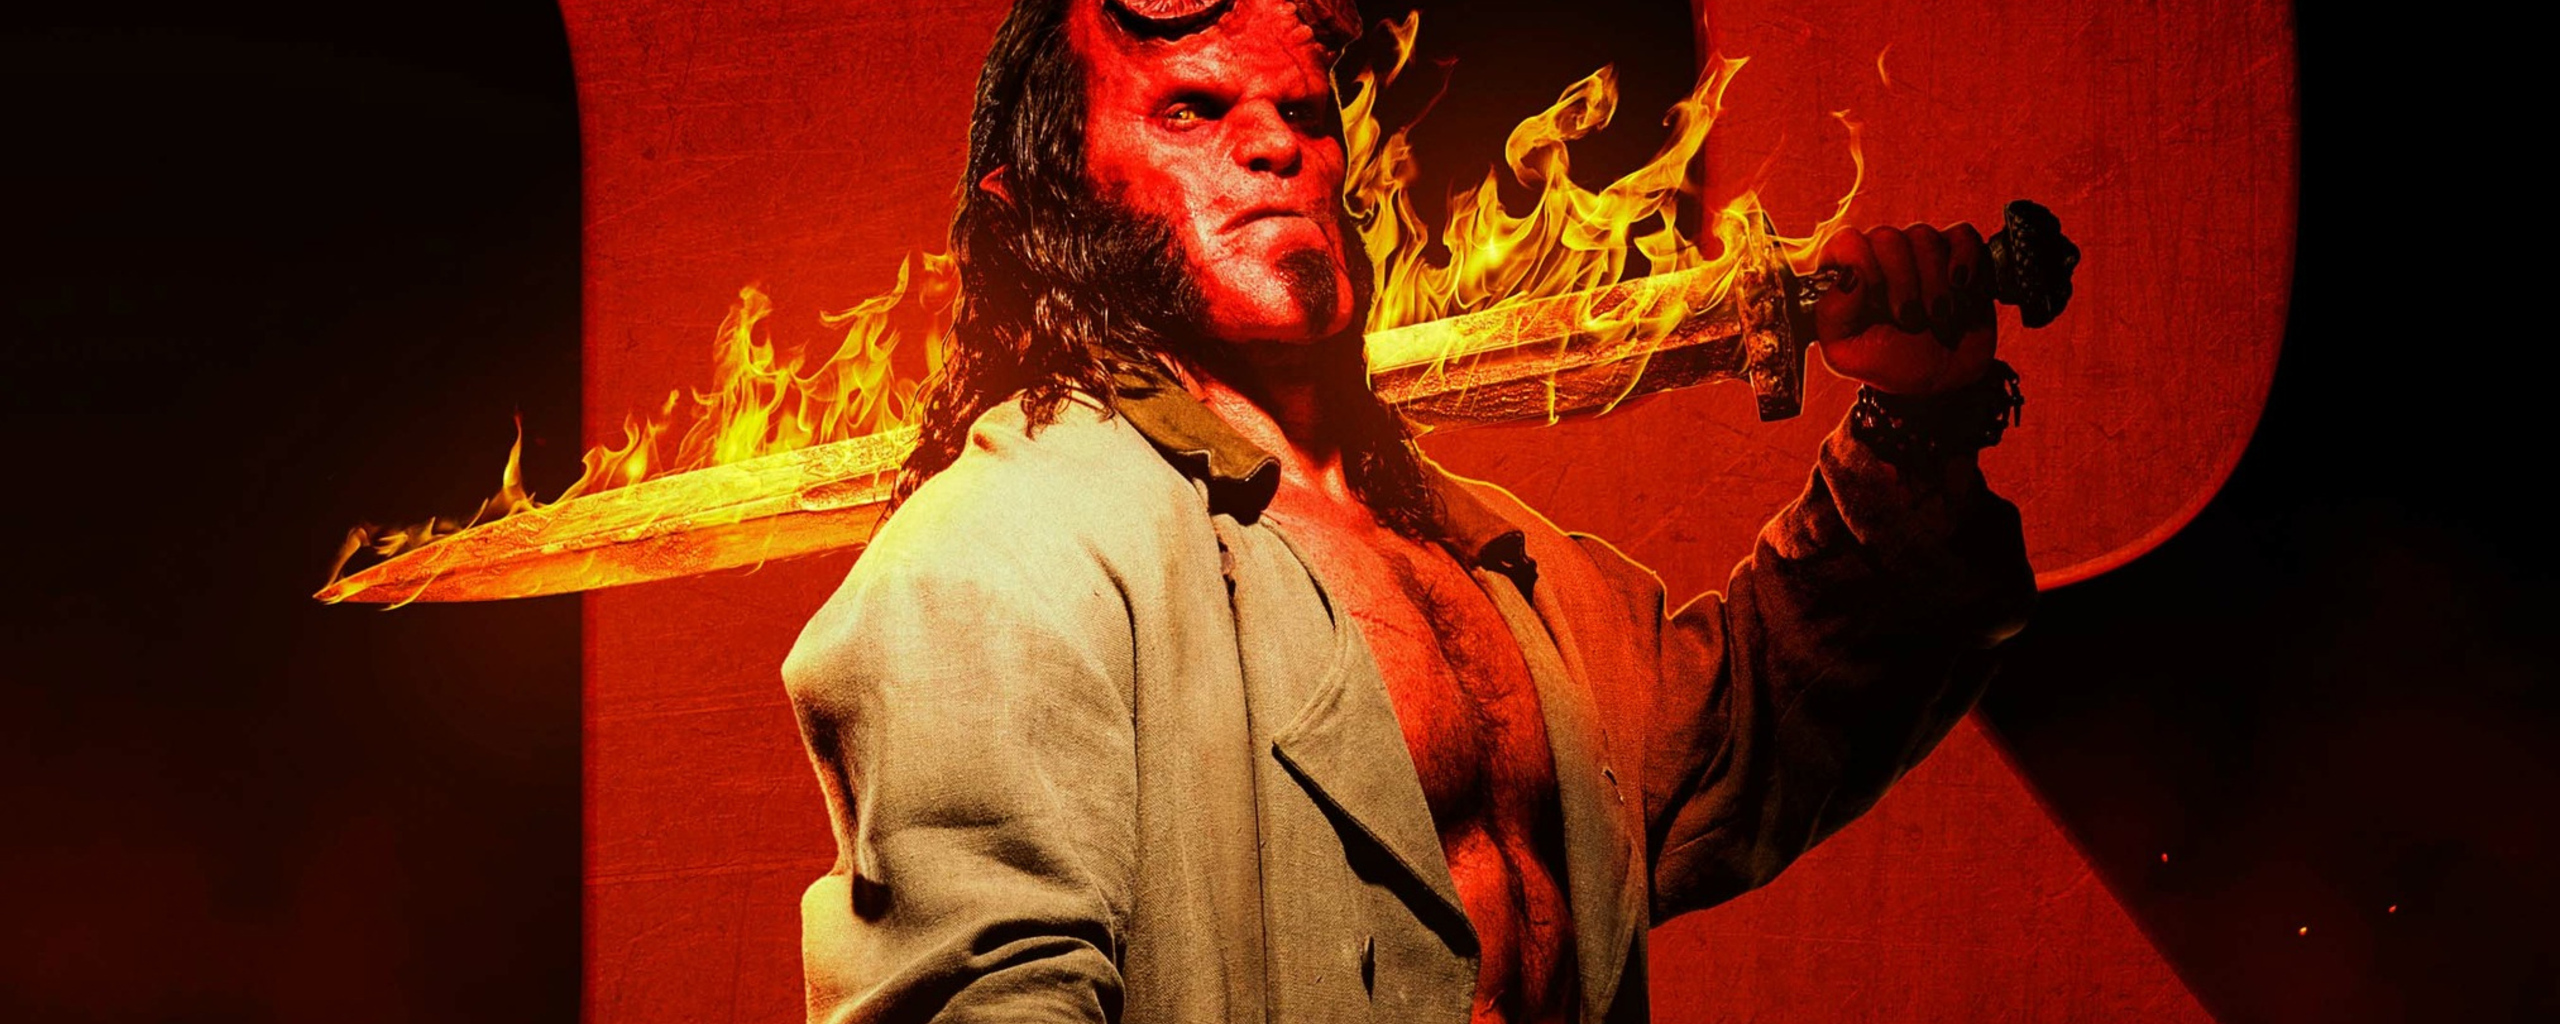 r rated superhero movie 2019 2560x1024 Hellboy 2019 R Rated 2560x1024 Resolution HD 4k